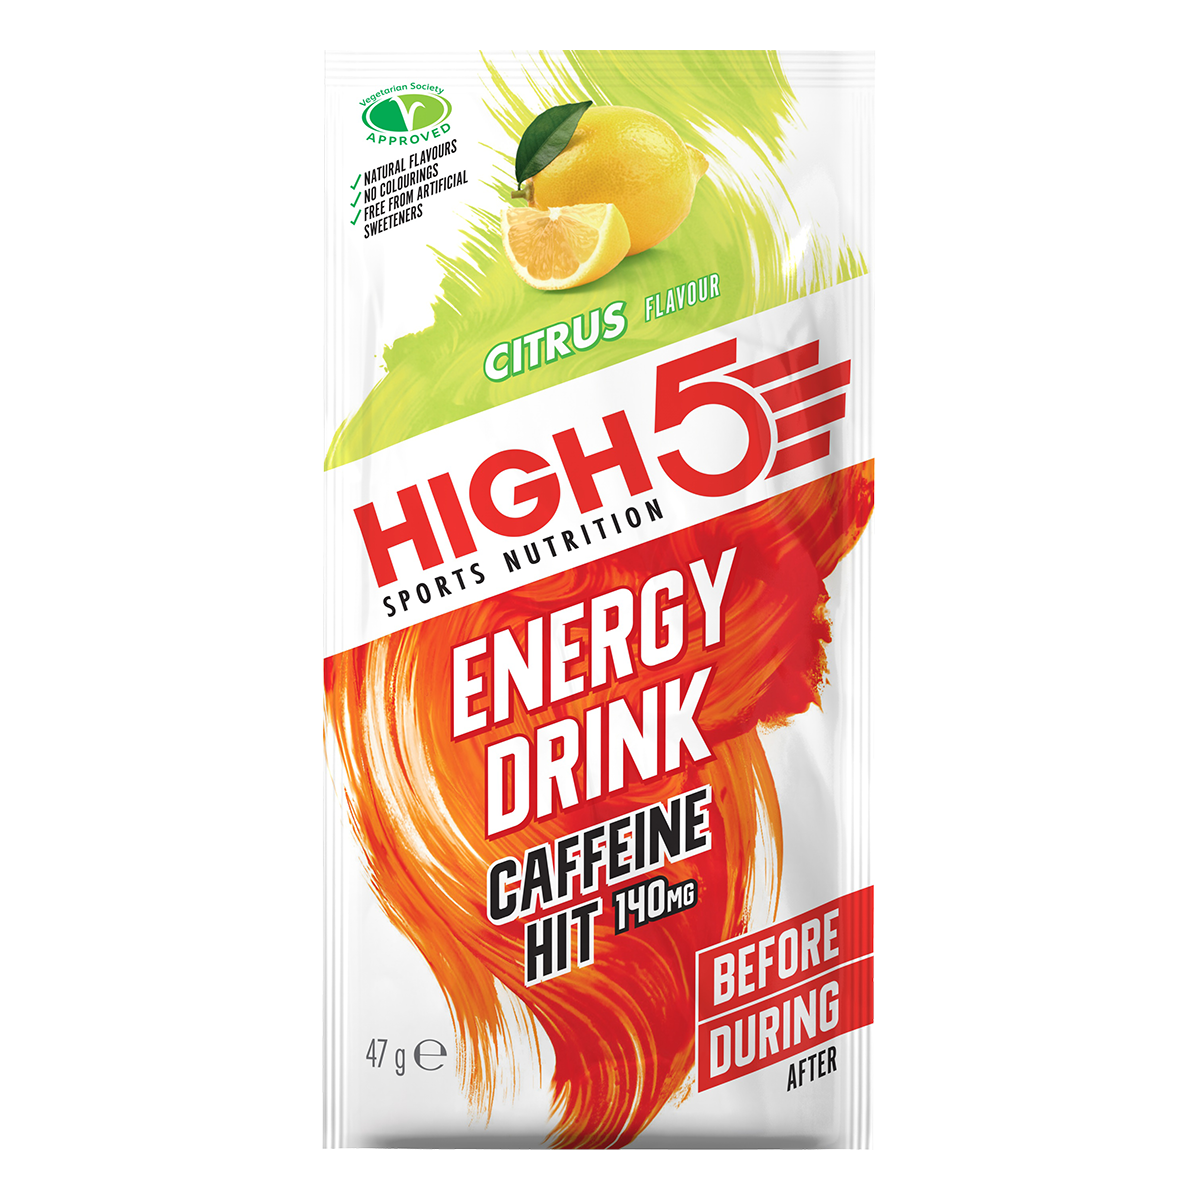 Energy-Drink-Caffeine-Hit_Citrus_47g_Front_RGB_1200x1200.png